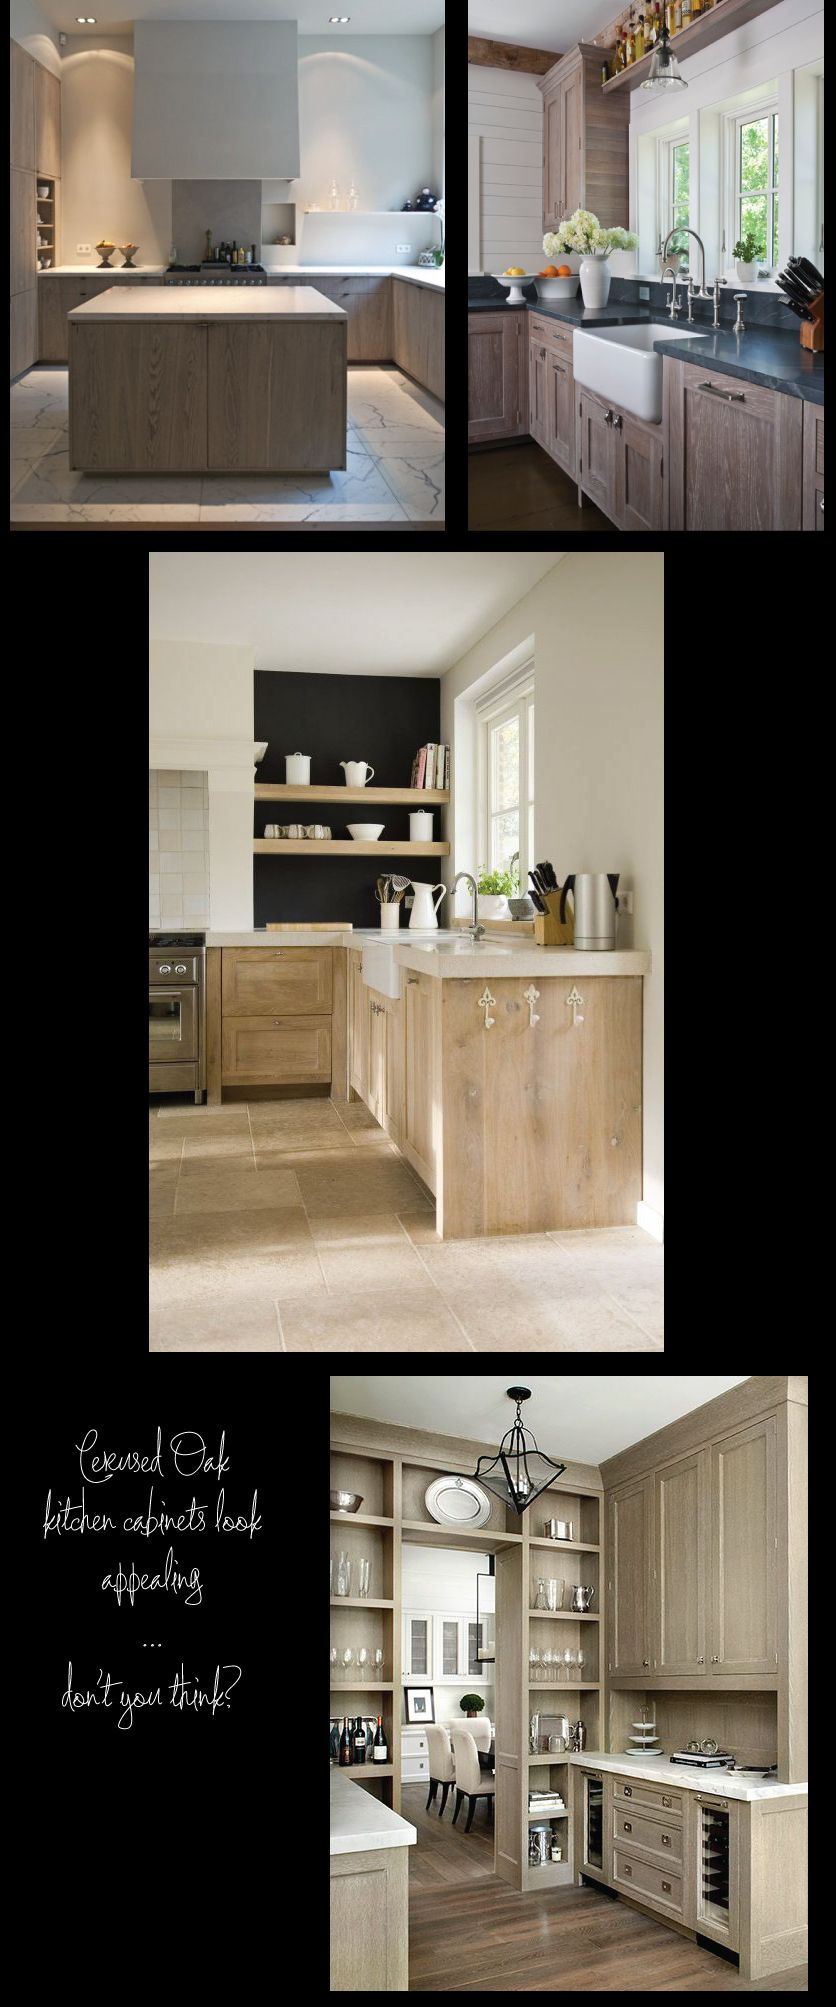 Design In Wood What To Do With Oak Cabinets: Cerused-Oak-Kitchen-Cabinetscerused Cabinets